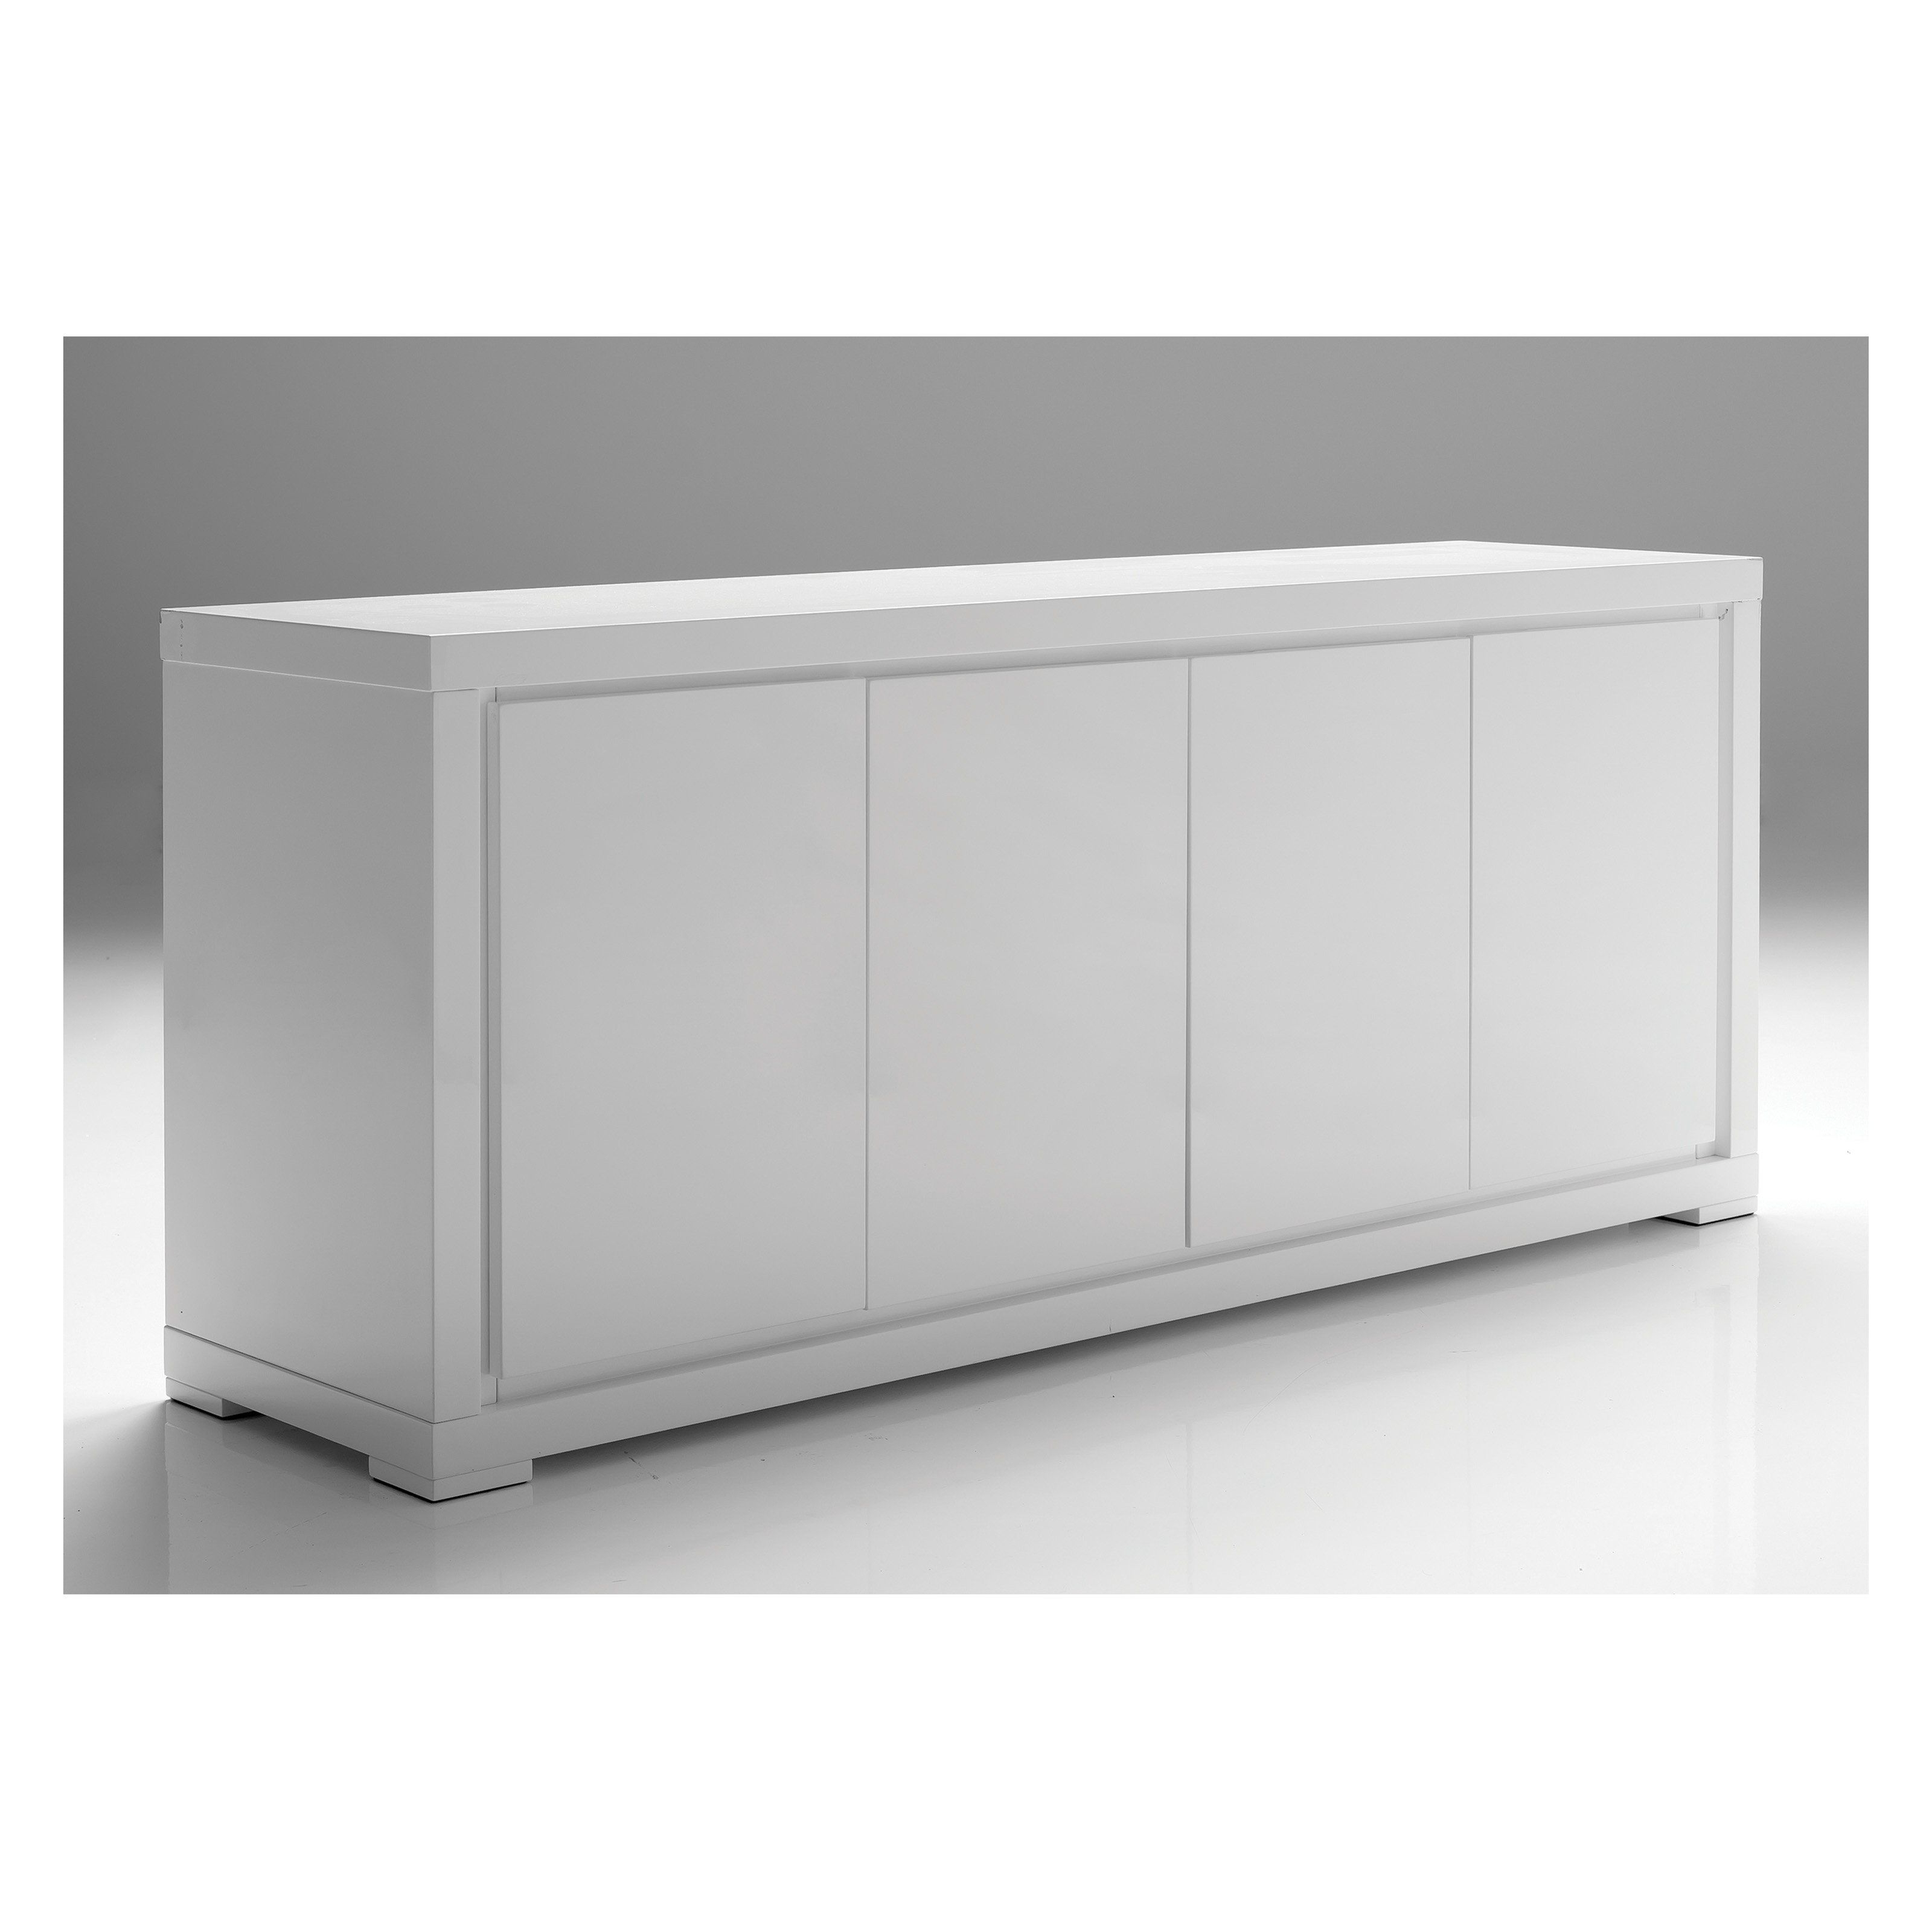 Have To Have It. Maze 4 Door Dining Buffet – White $ (View 4 of 20)